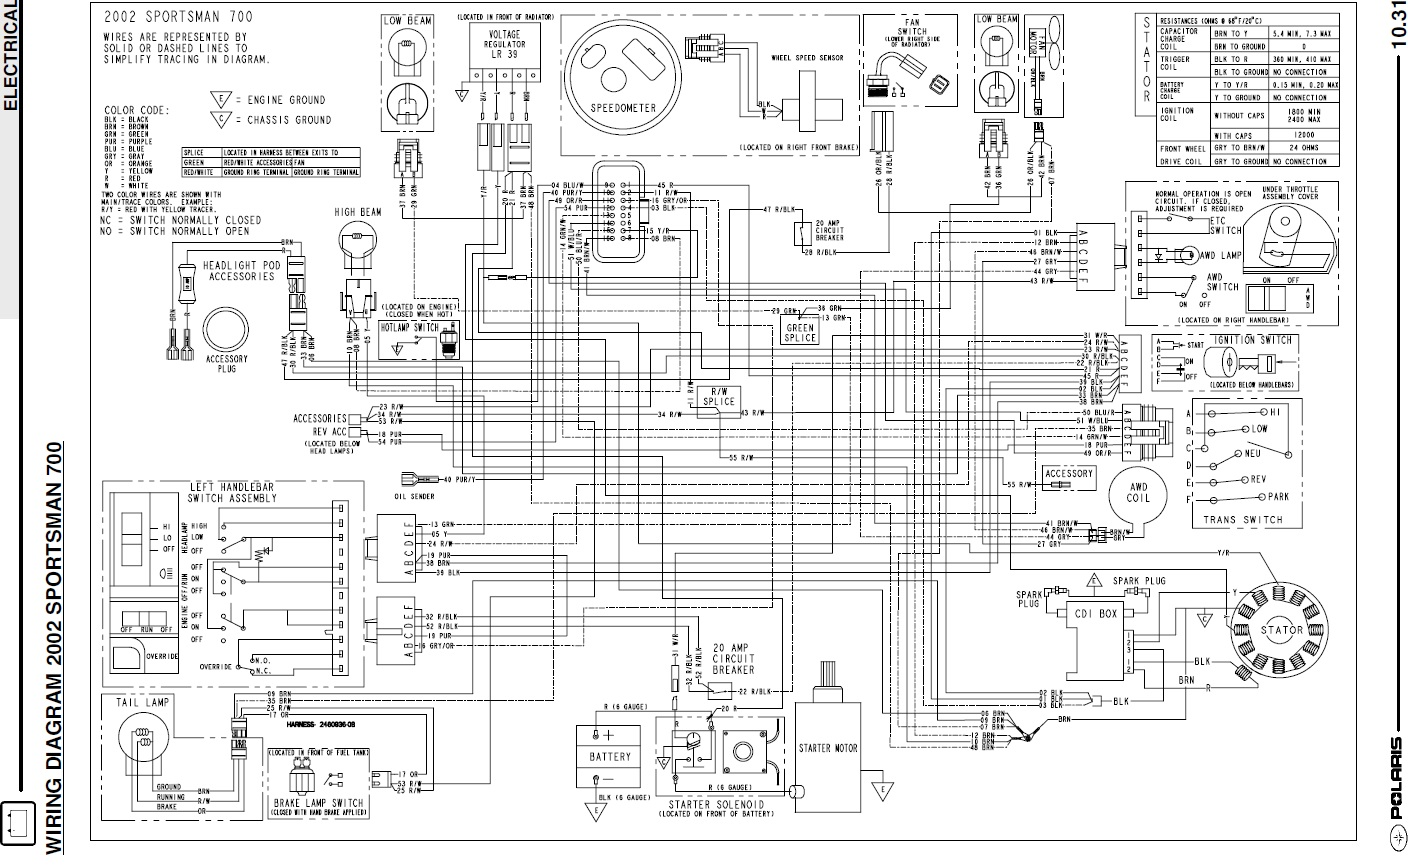 2005 Polaris Sportsman Wiring Diagram - 18.18.asyaunited.de • on polaris solenoid wiring diagram, polaris electrical schematics, polaris 600 wiring diagram, polaris sportsman parts diagram, polaris 500 ho wiring-diagram, polaris ranger 500 wiring diagram, polaris wiring schematic, polaris wiring diagrams 1997,